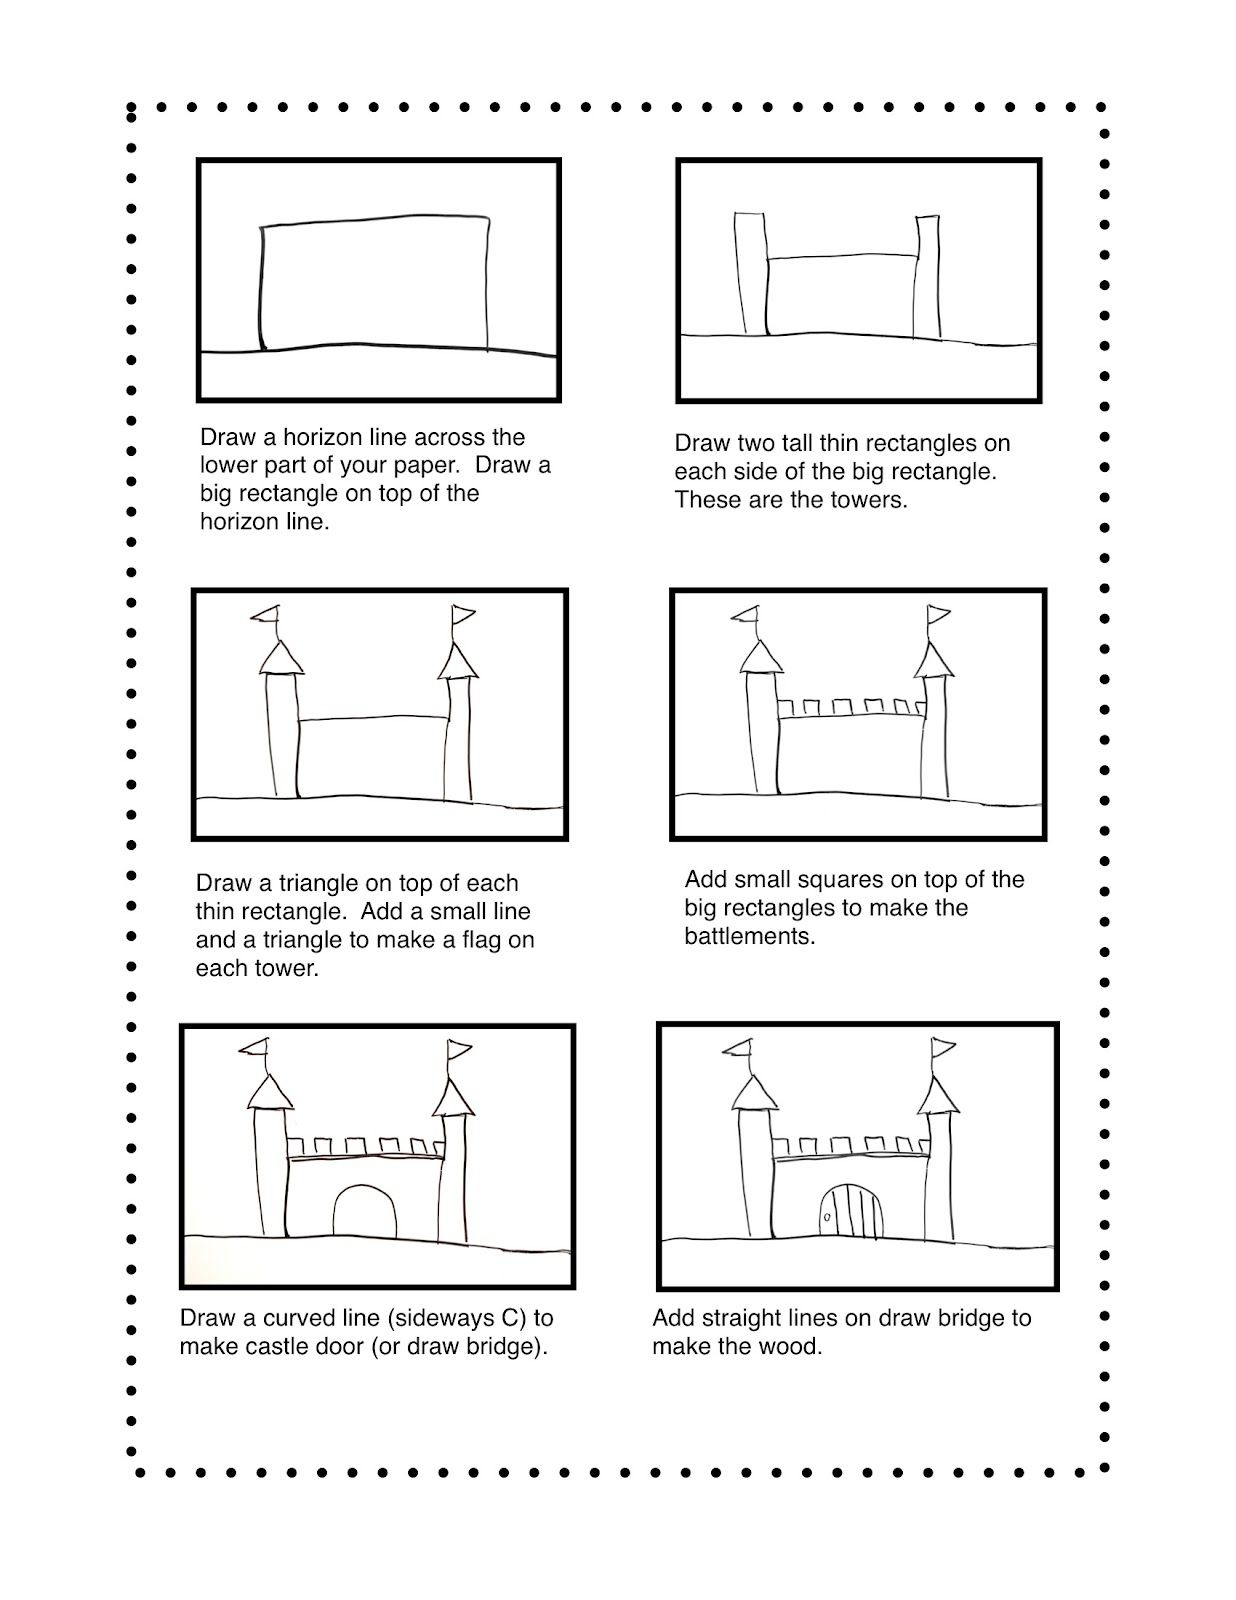 Fairy Dust Teaching Kindergarten Blog: Drawing Castles | Castles